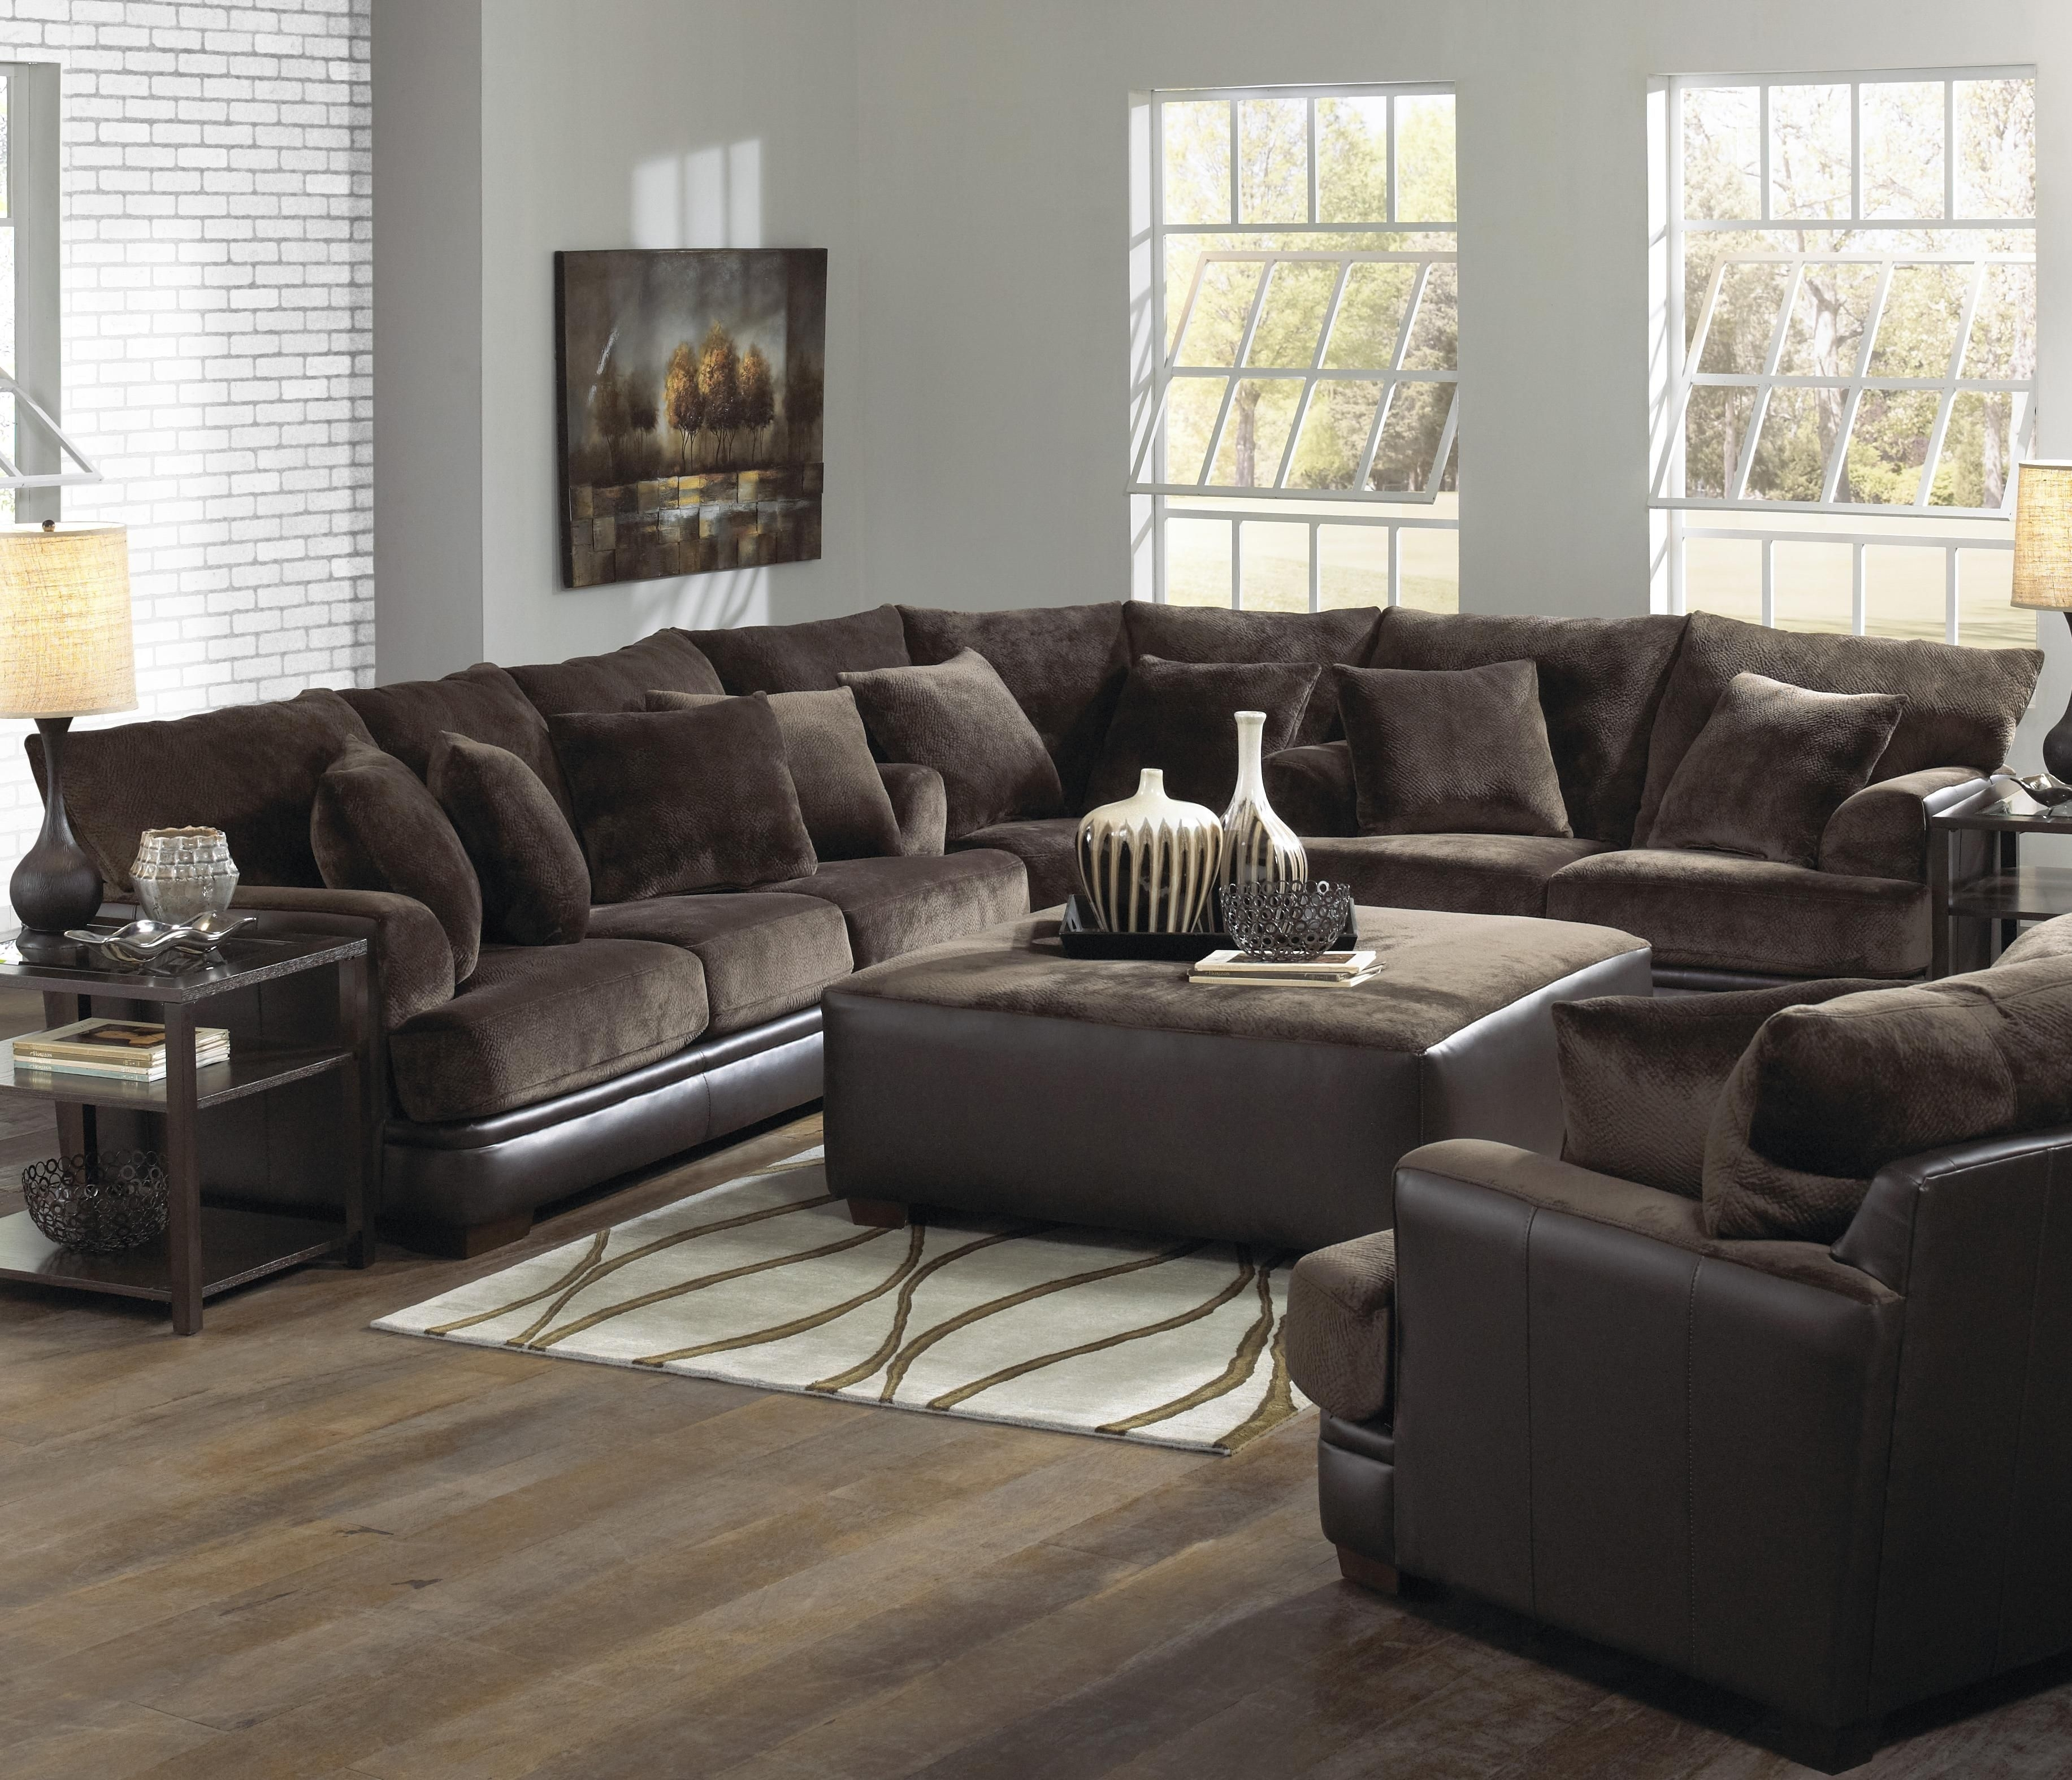 Furniture. Dark Brown Velvet Couch Plus Black Leather Base Also within Declan 3 Piece Power Reclining Sectionals With Left Facing Console Loveseat (Image 17 of 30)